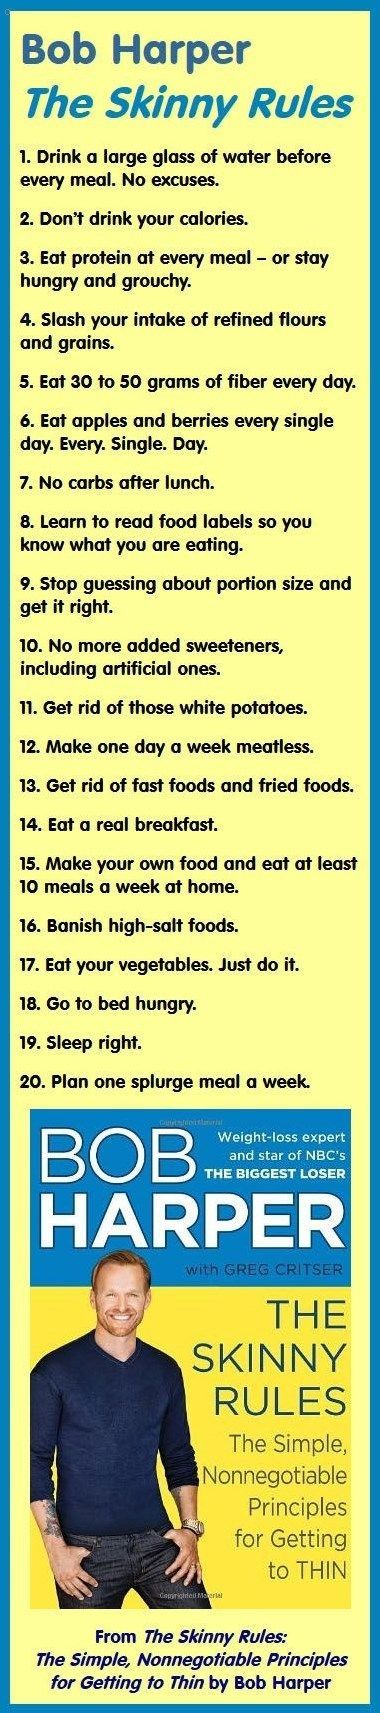 6 diet tips to lose belly fat image 8